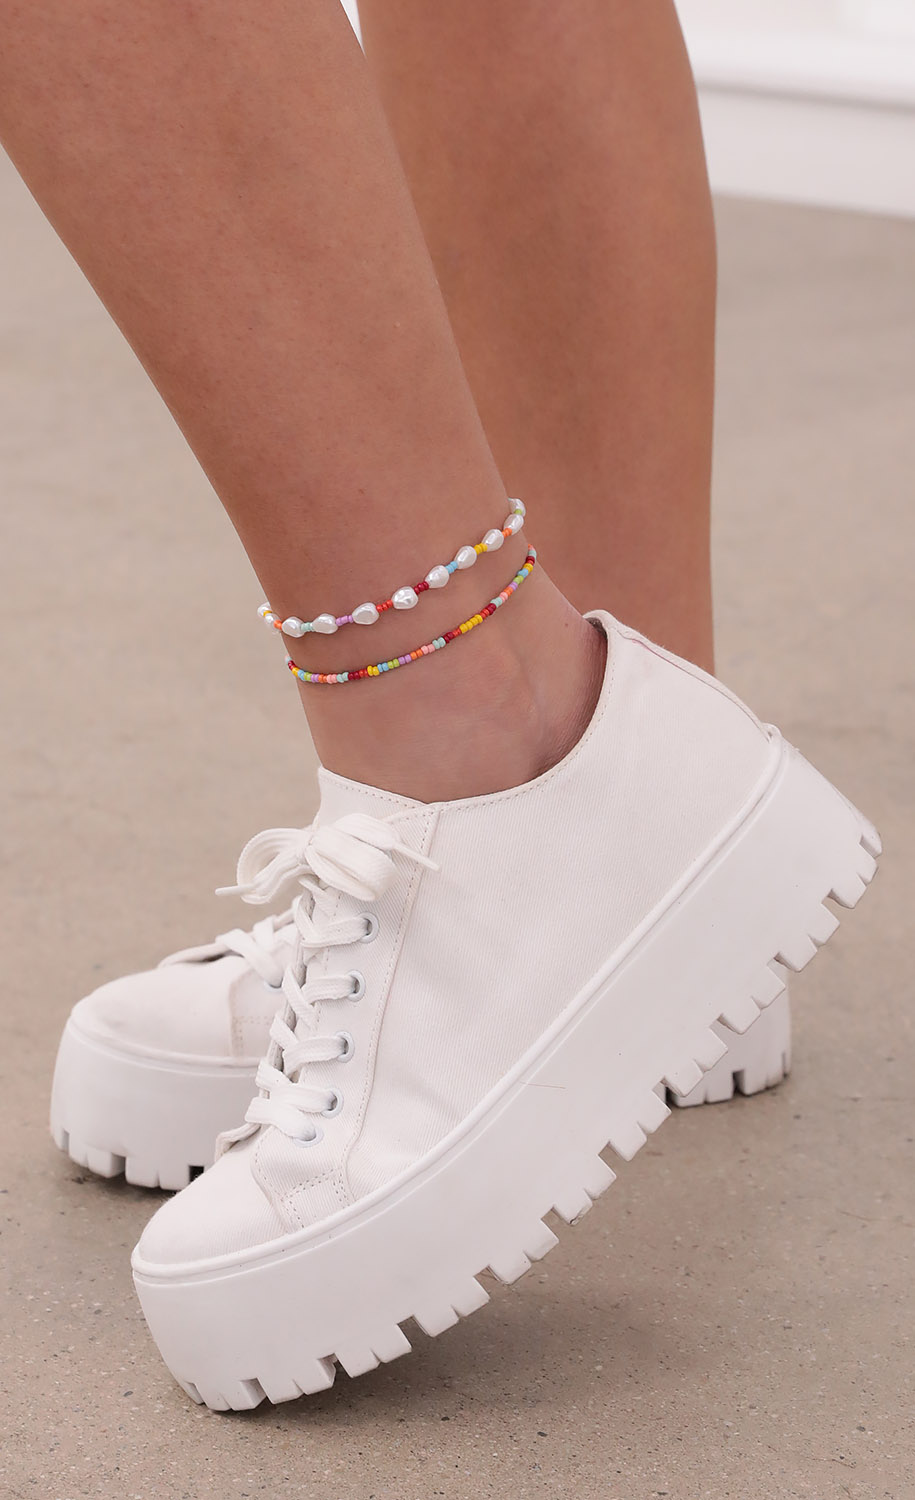 For The Love of Beads Anklet Set